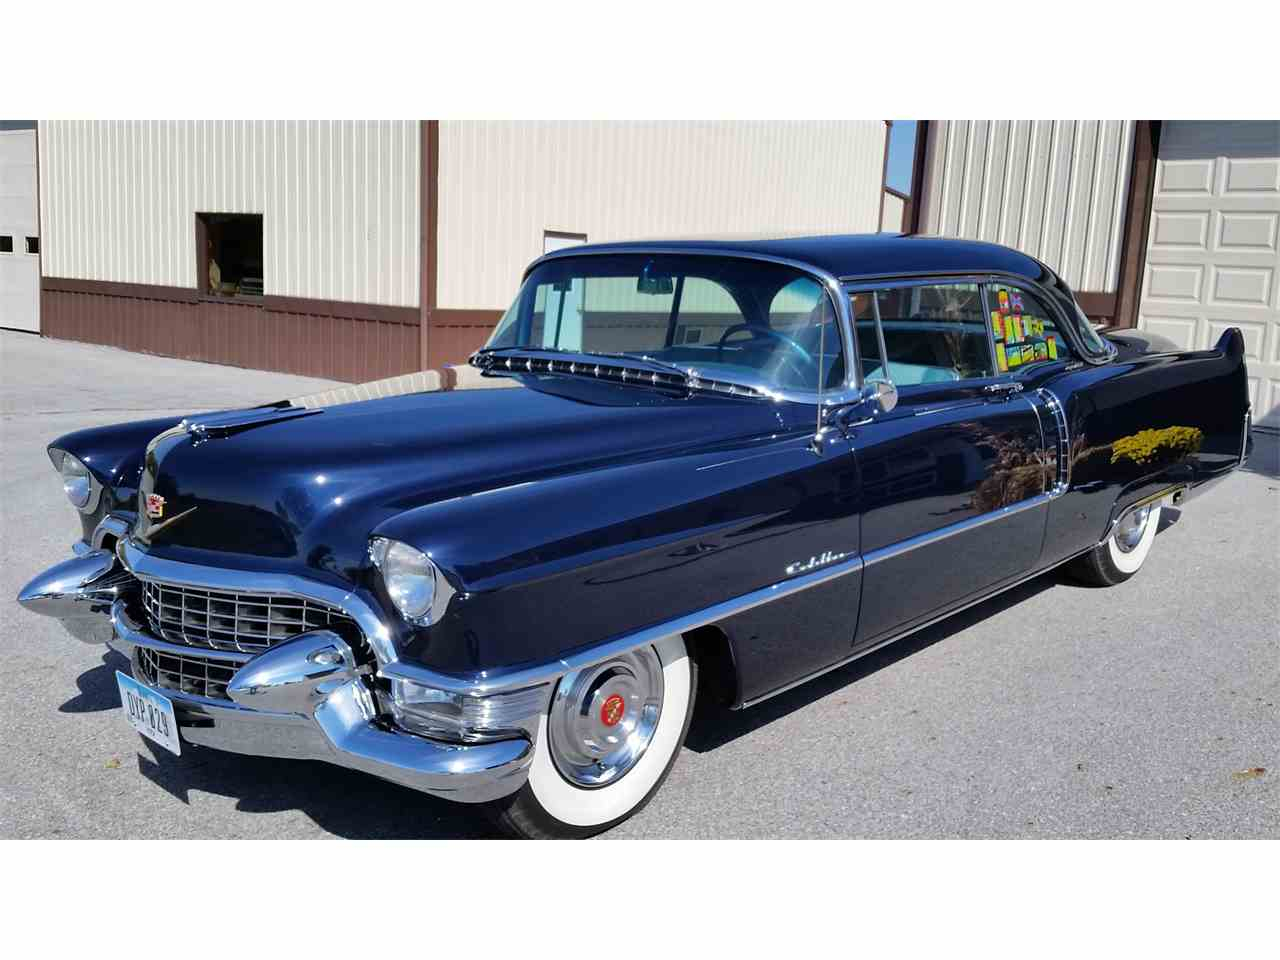 Old Classic El Camino Muscle Cars Wallpaper 1955 Cadillac Coupe Deville For Sale Classiccars Com